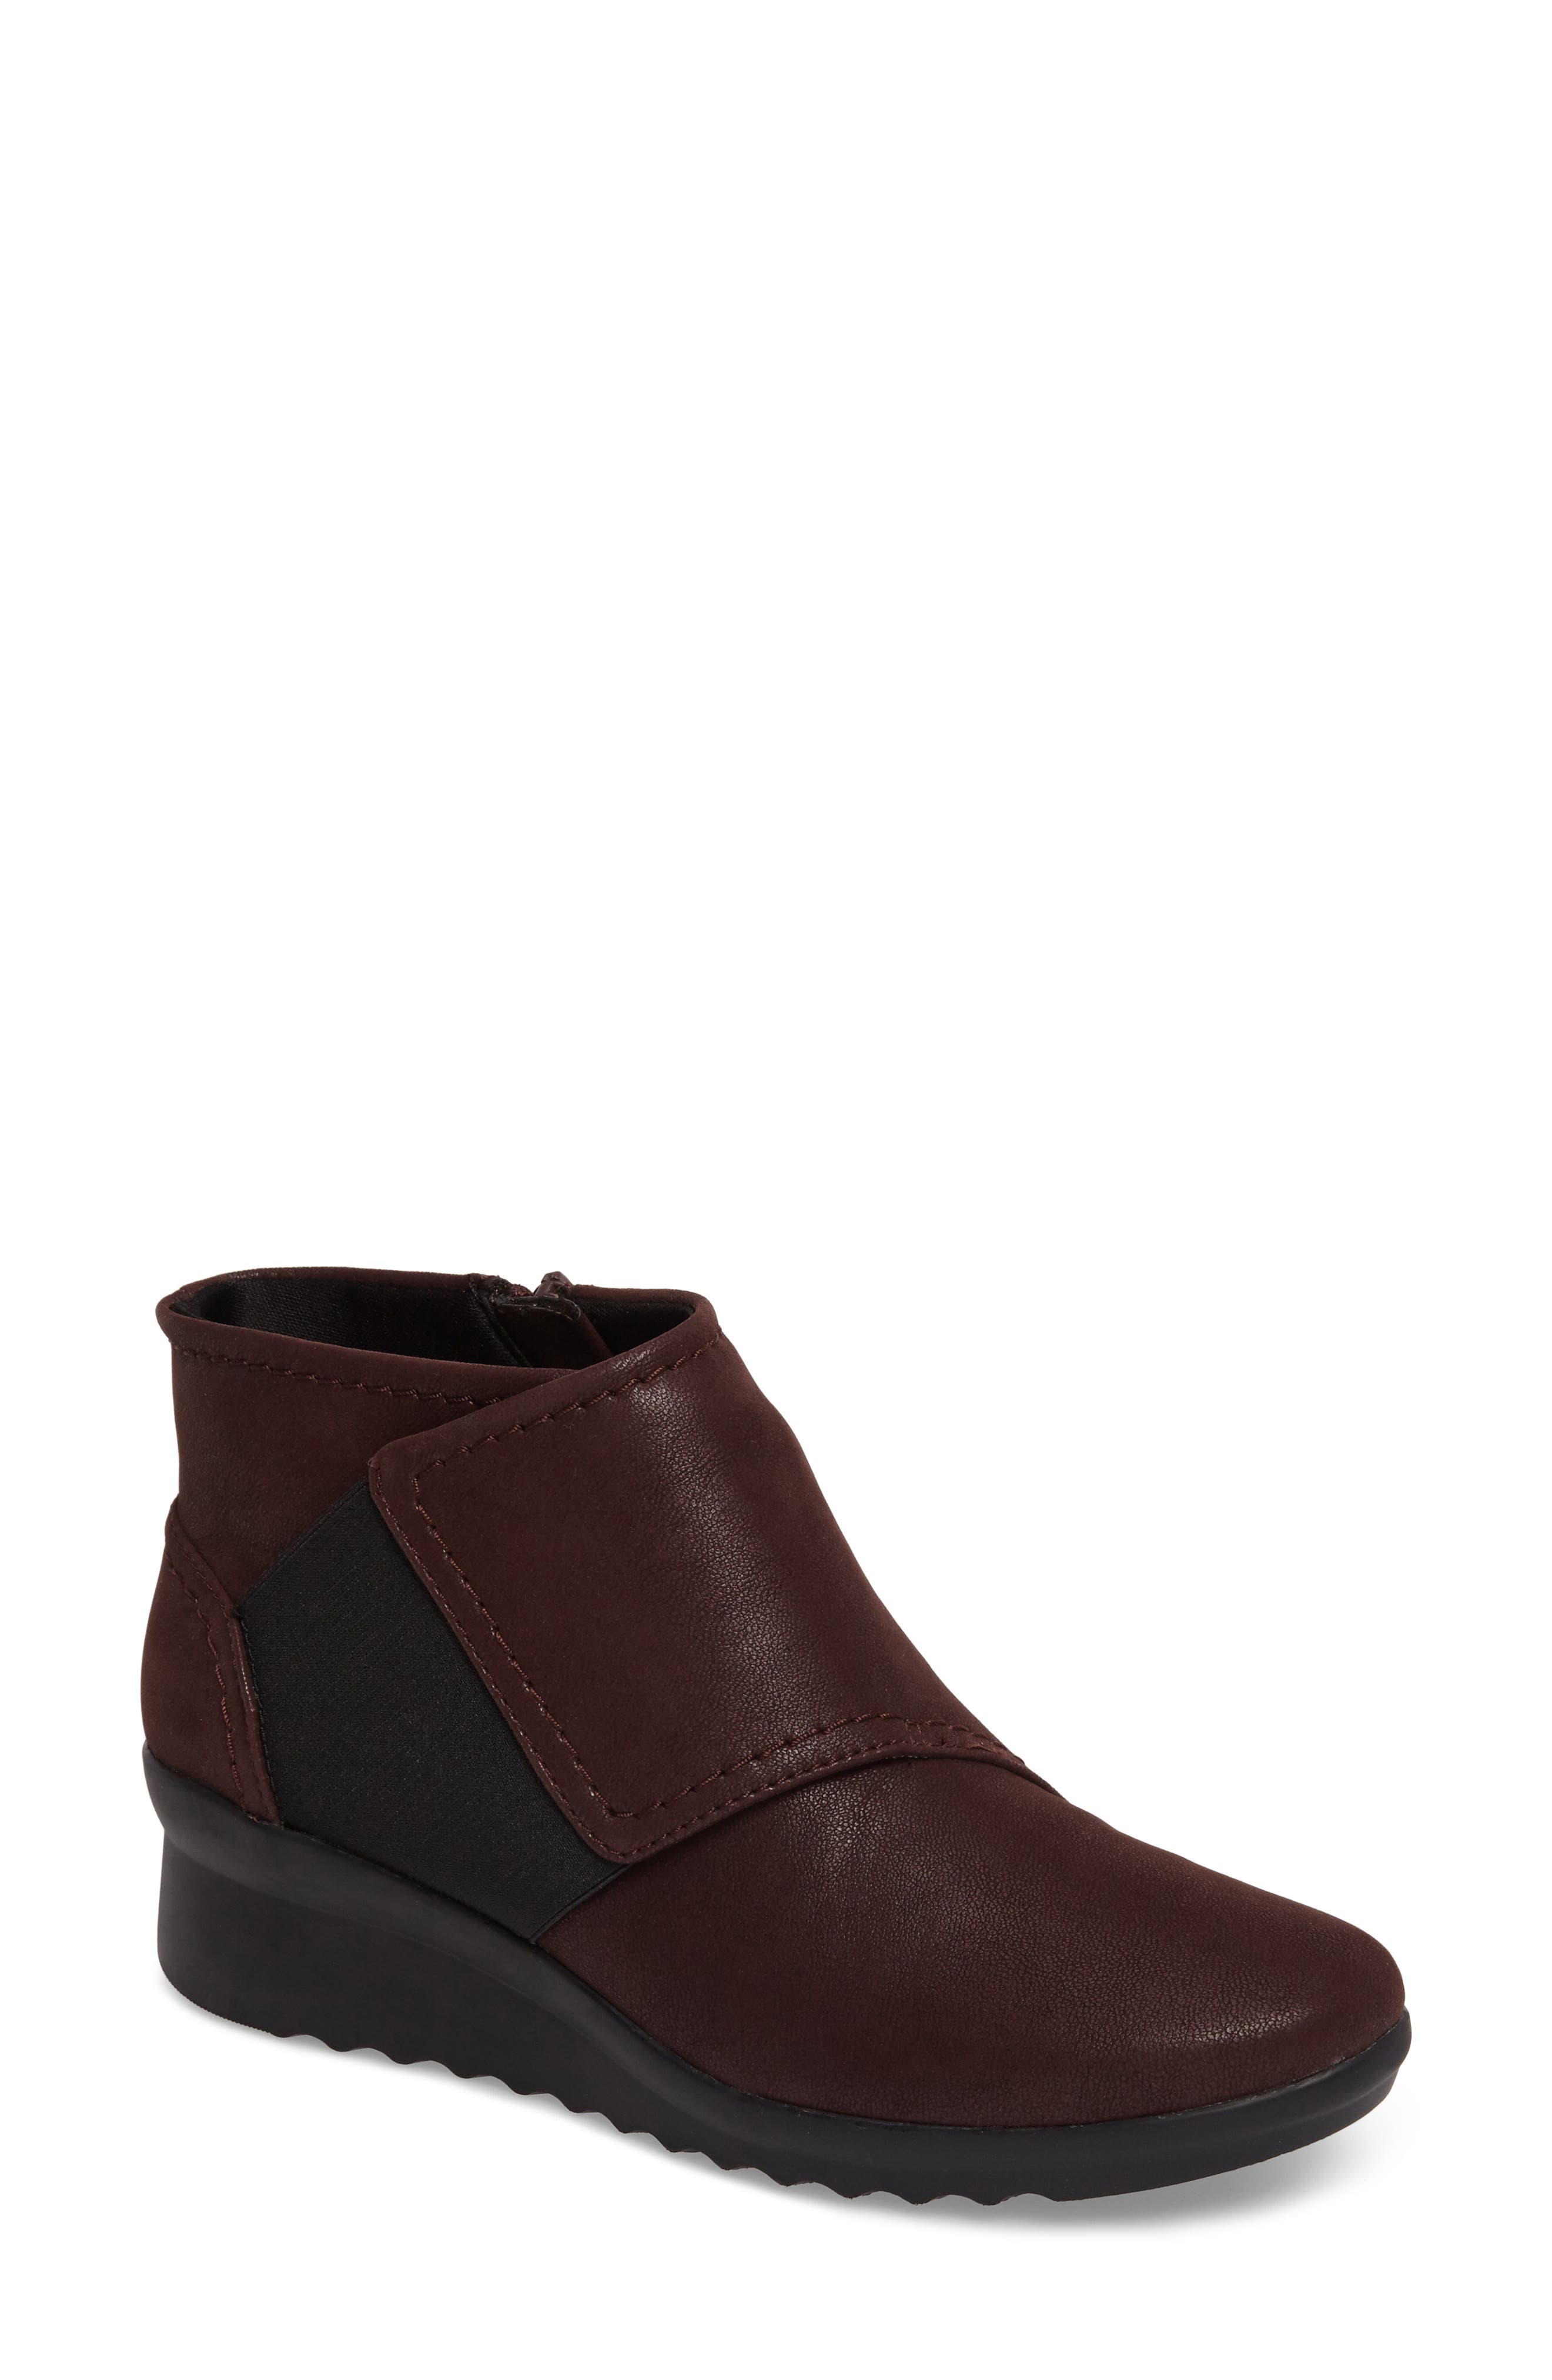 Caddell Rush Bootie,                             Main thumbnail 3, color,